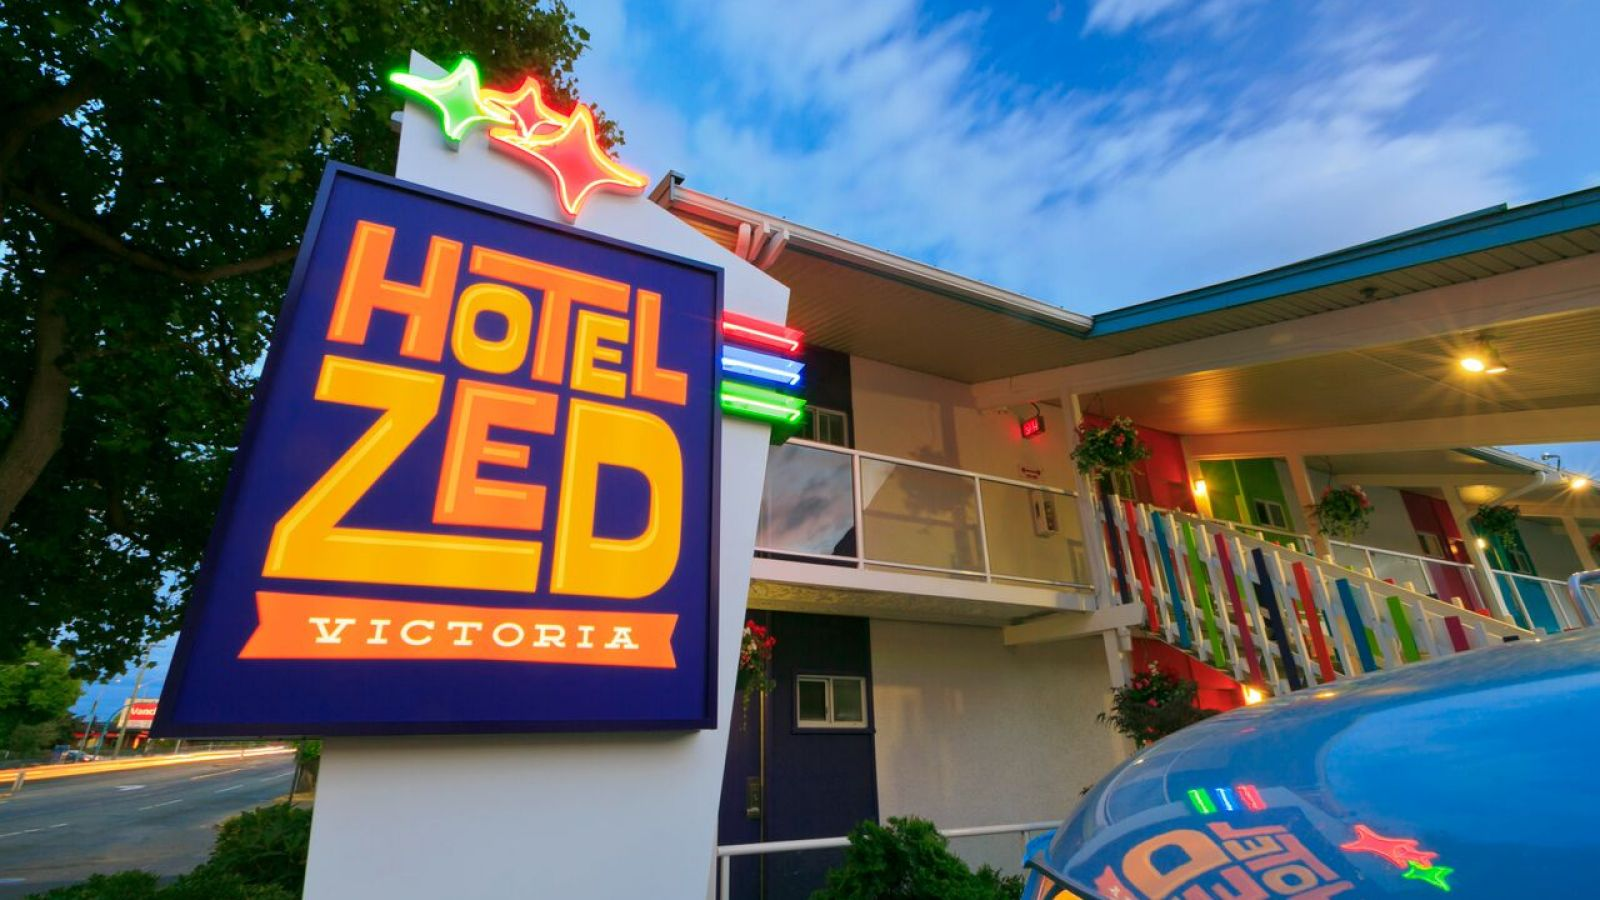 Hotel Zed Victoria - Vancouver Island golf packages